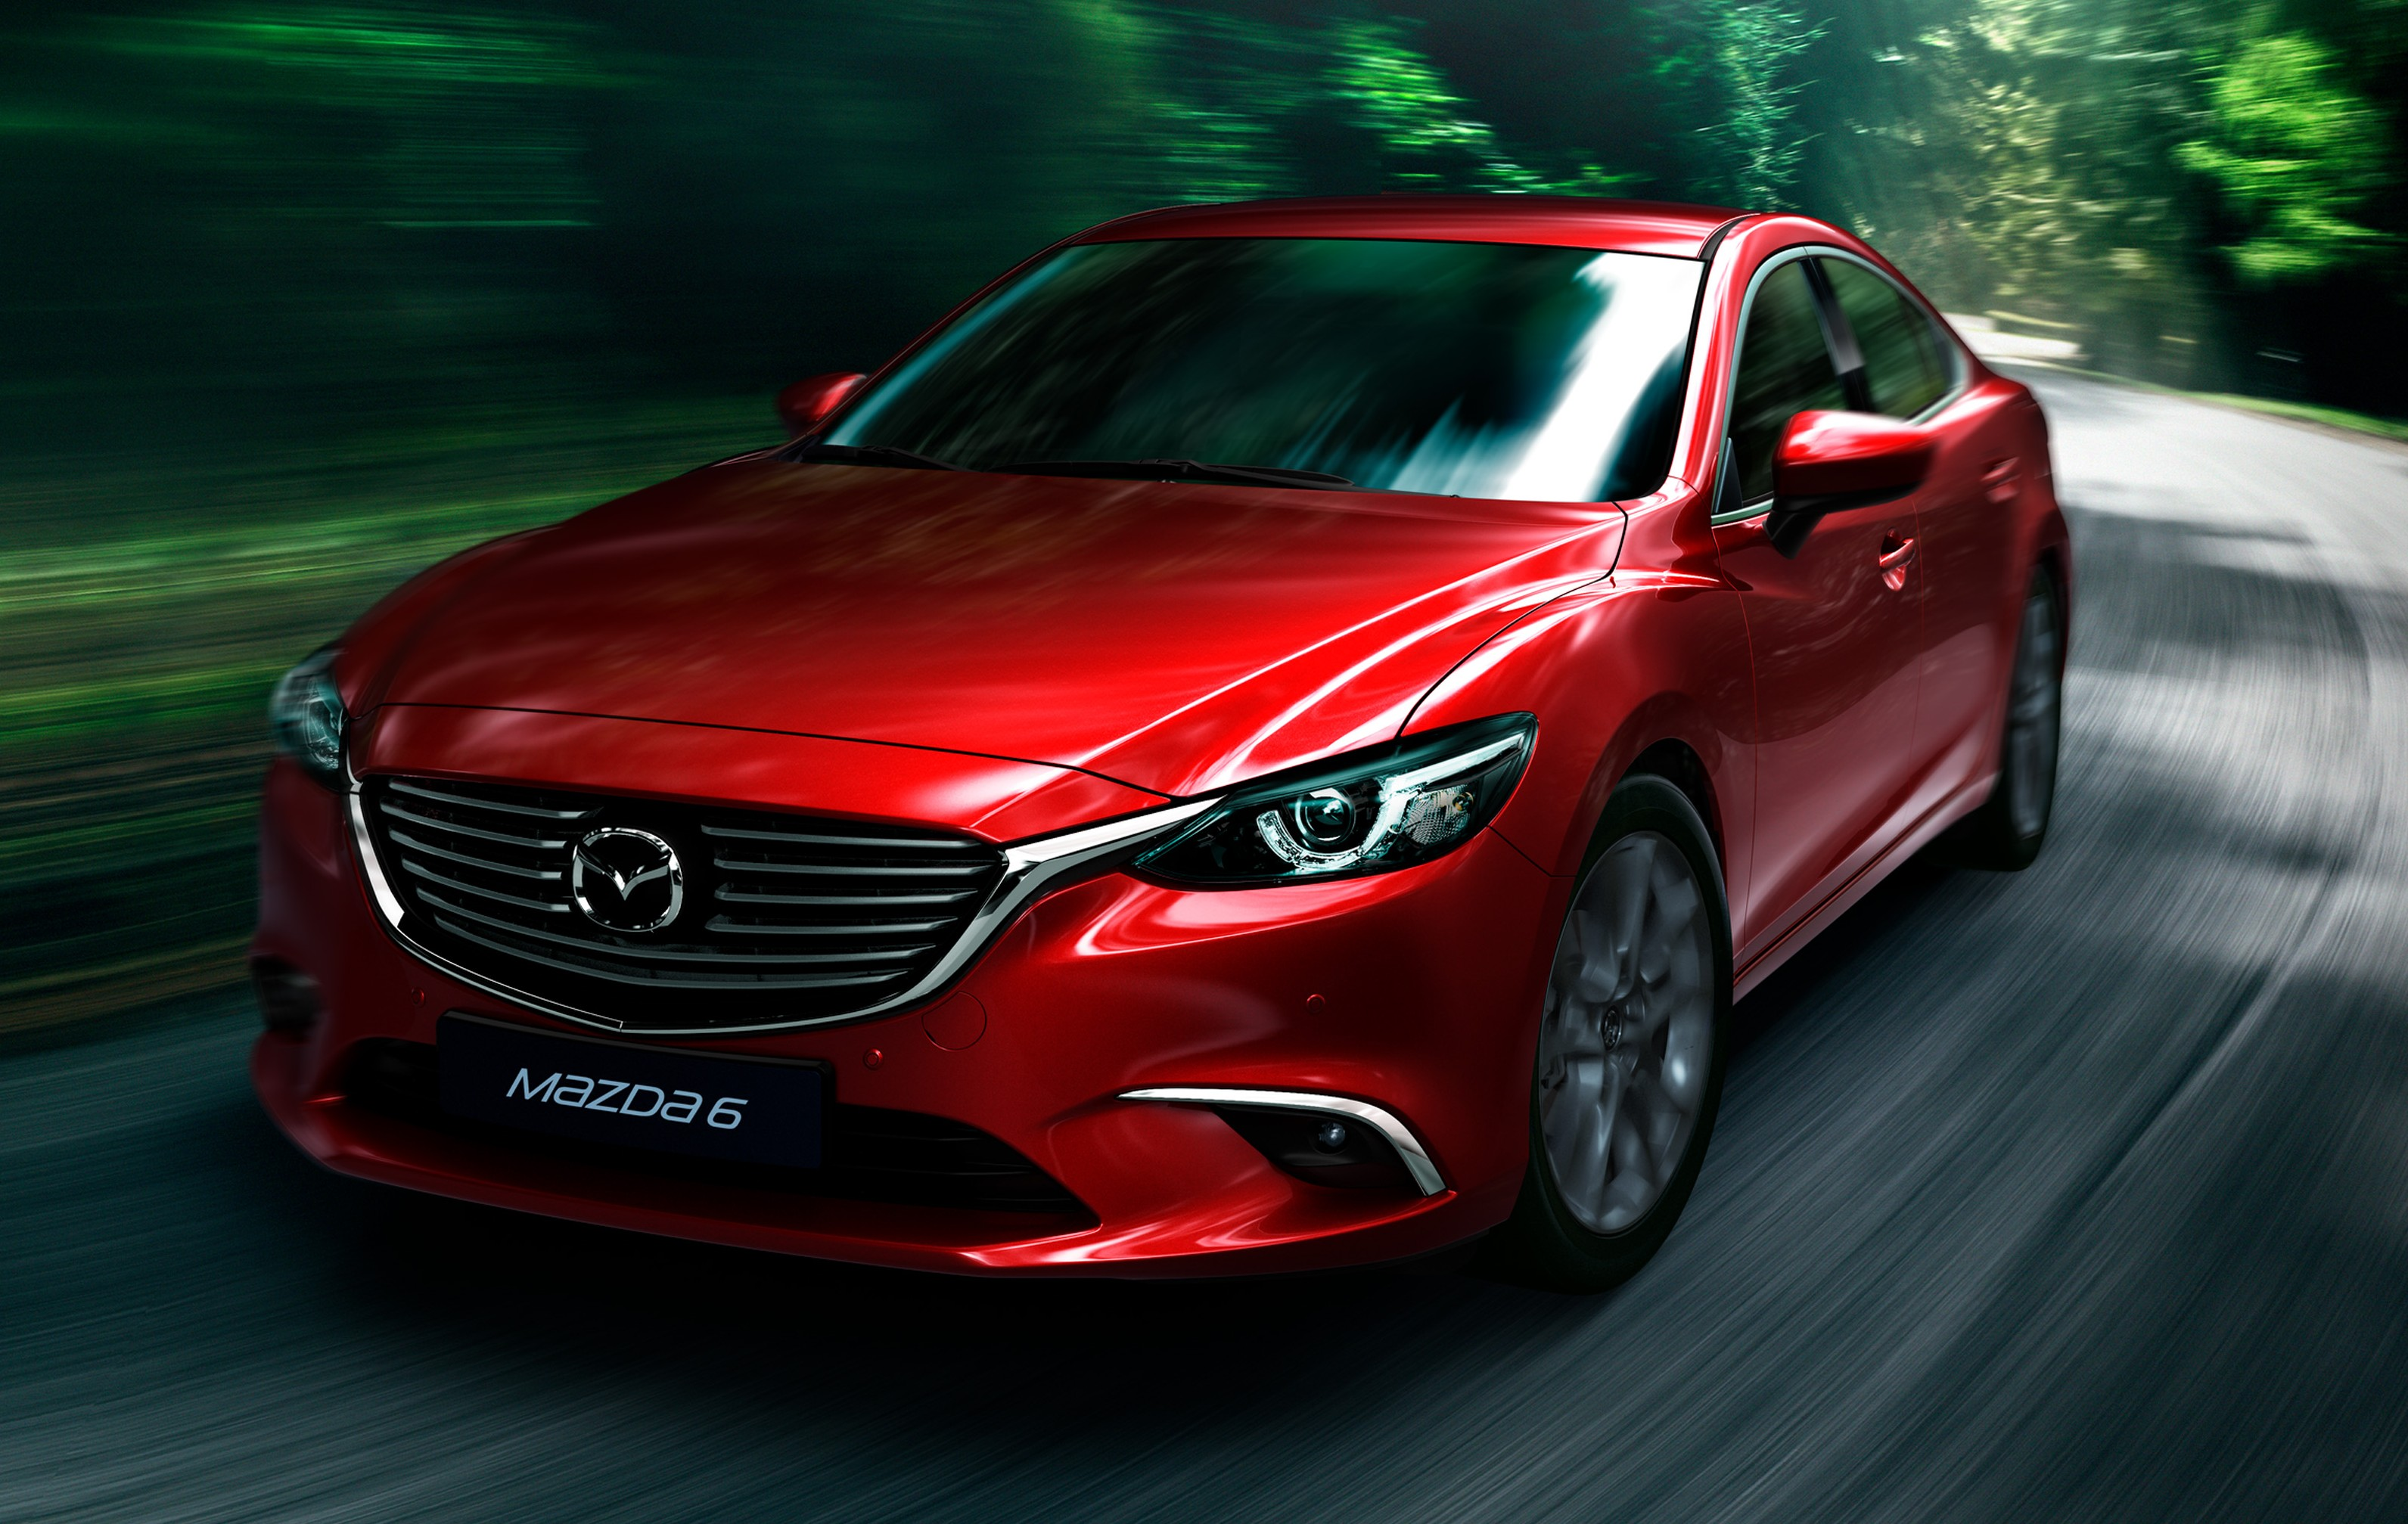 Mazda 6 2016 HD Wallpapers Free Download